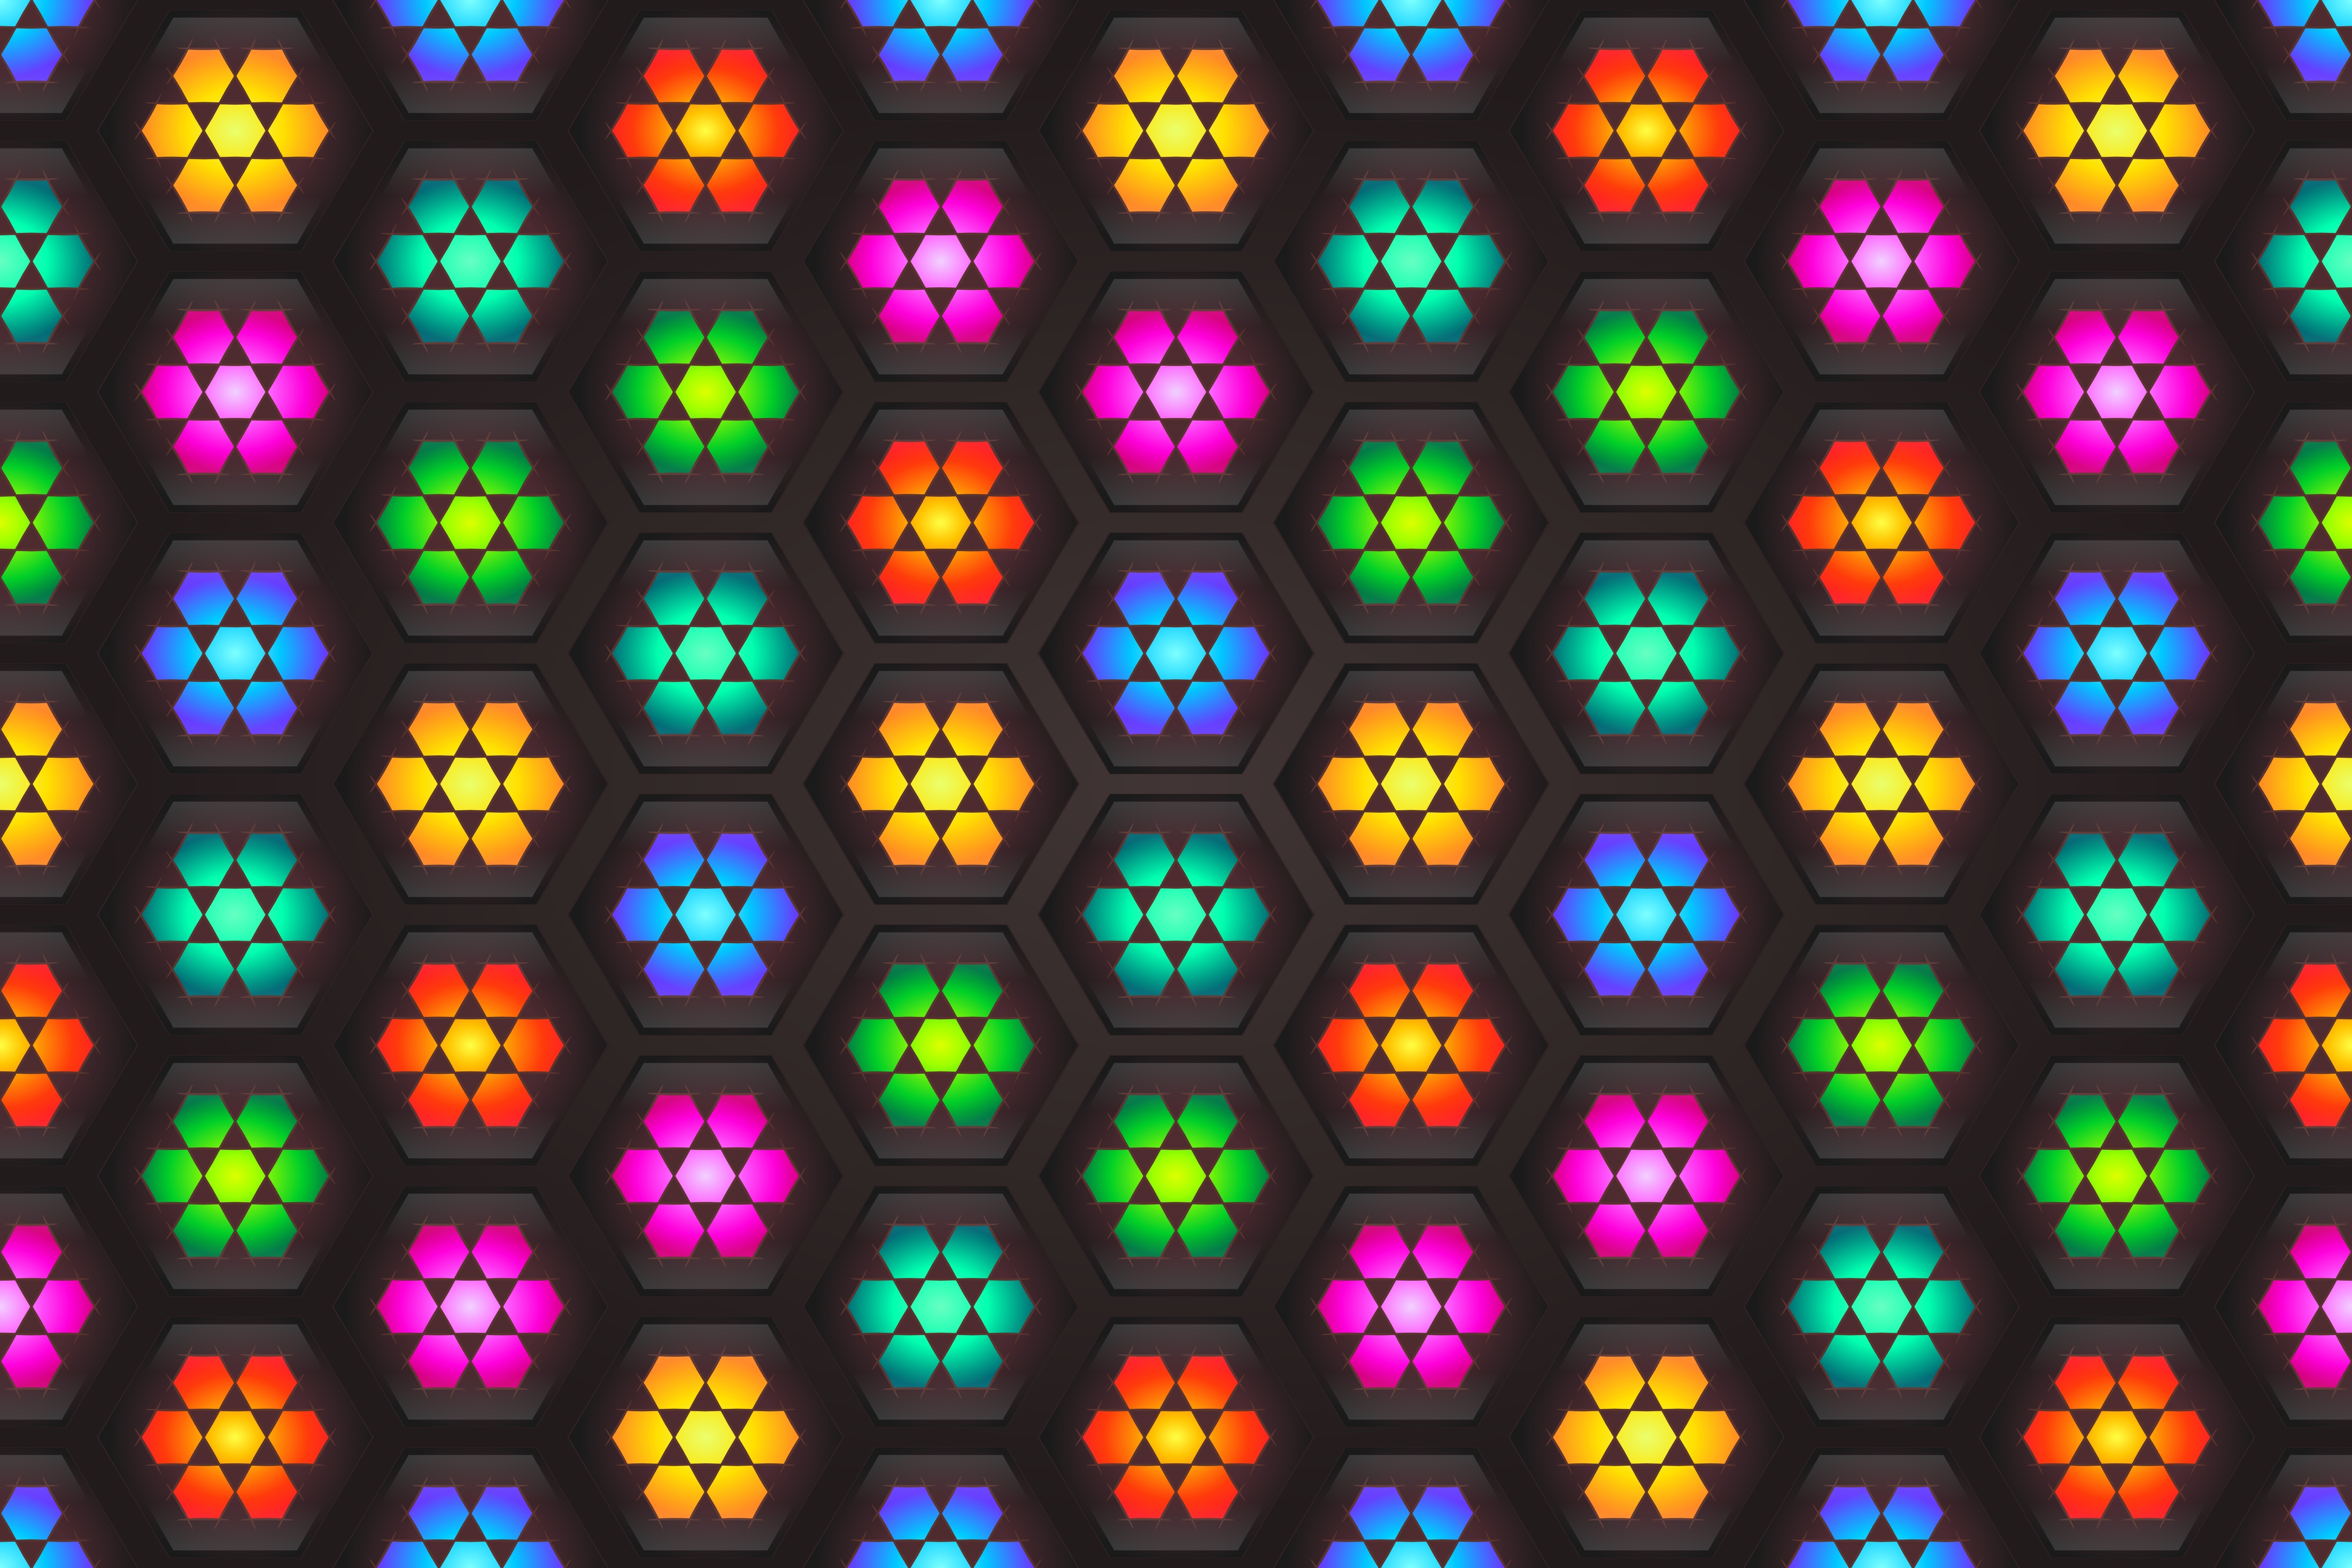 74837 download wallpaper Textures, Texture, Kaleidoscope, Mosaic, Multicolored, Motley, Patterns screensavers and pictures for free